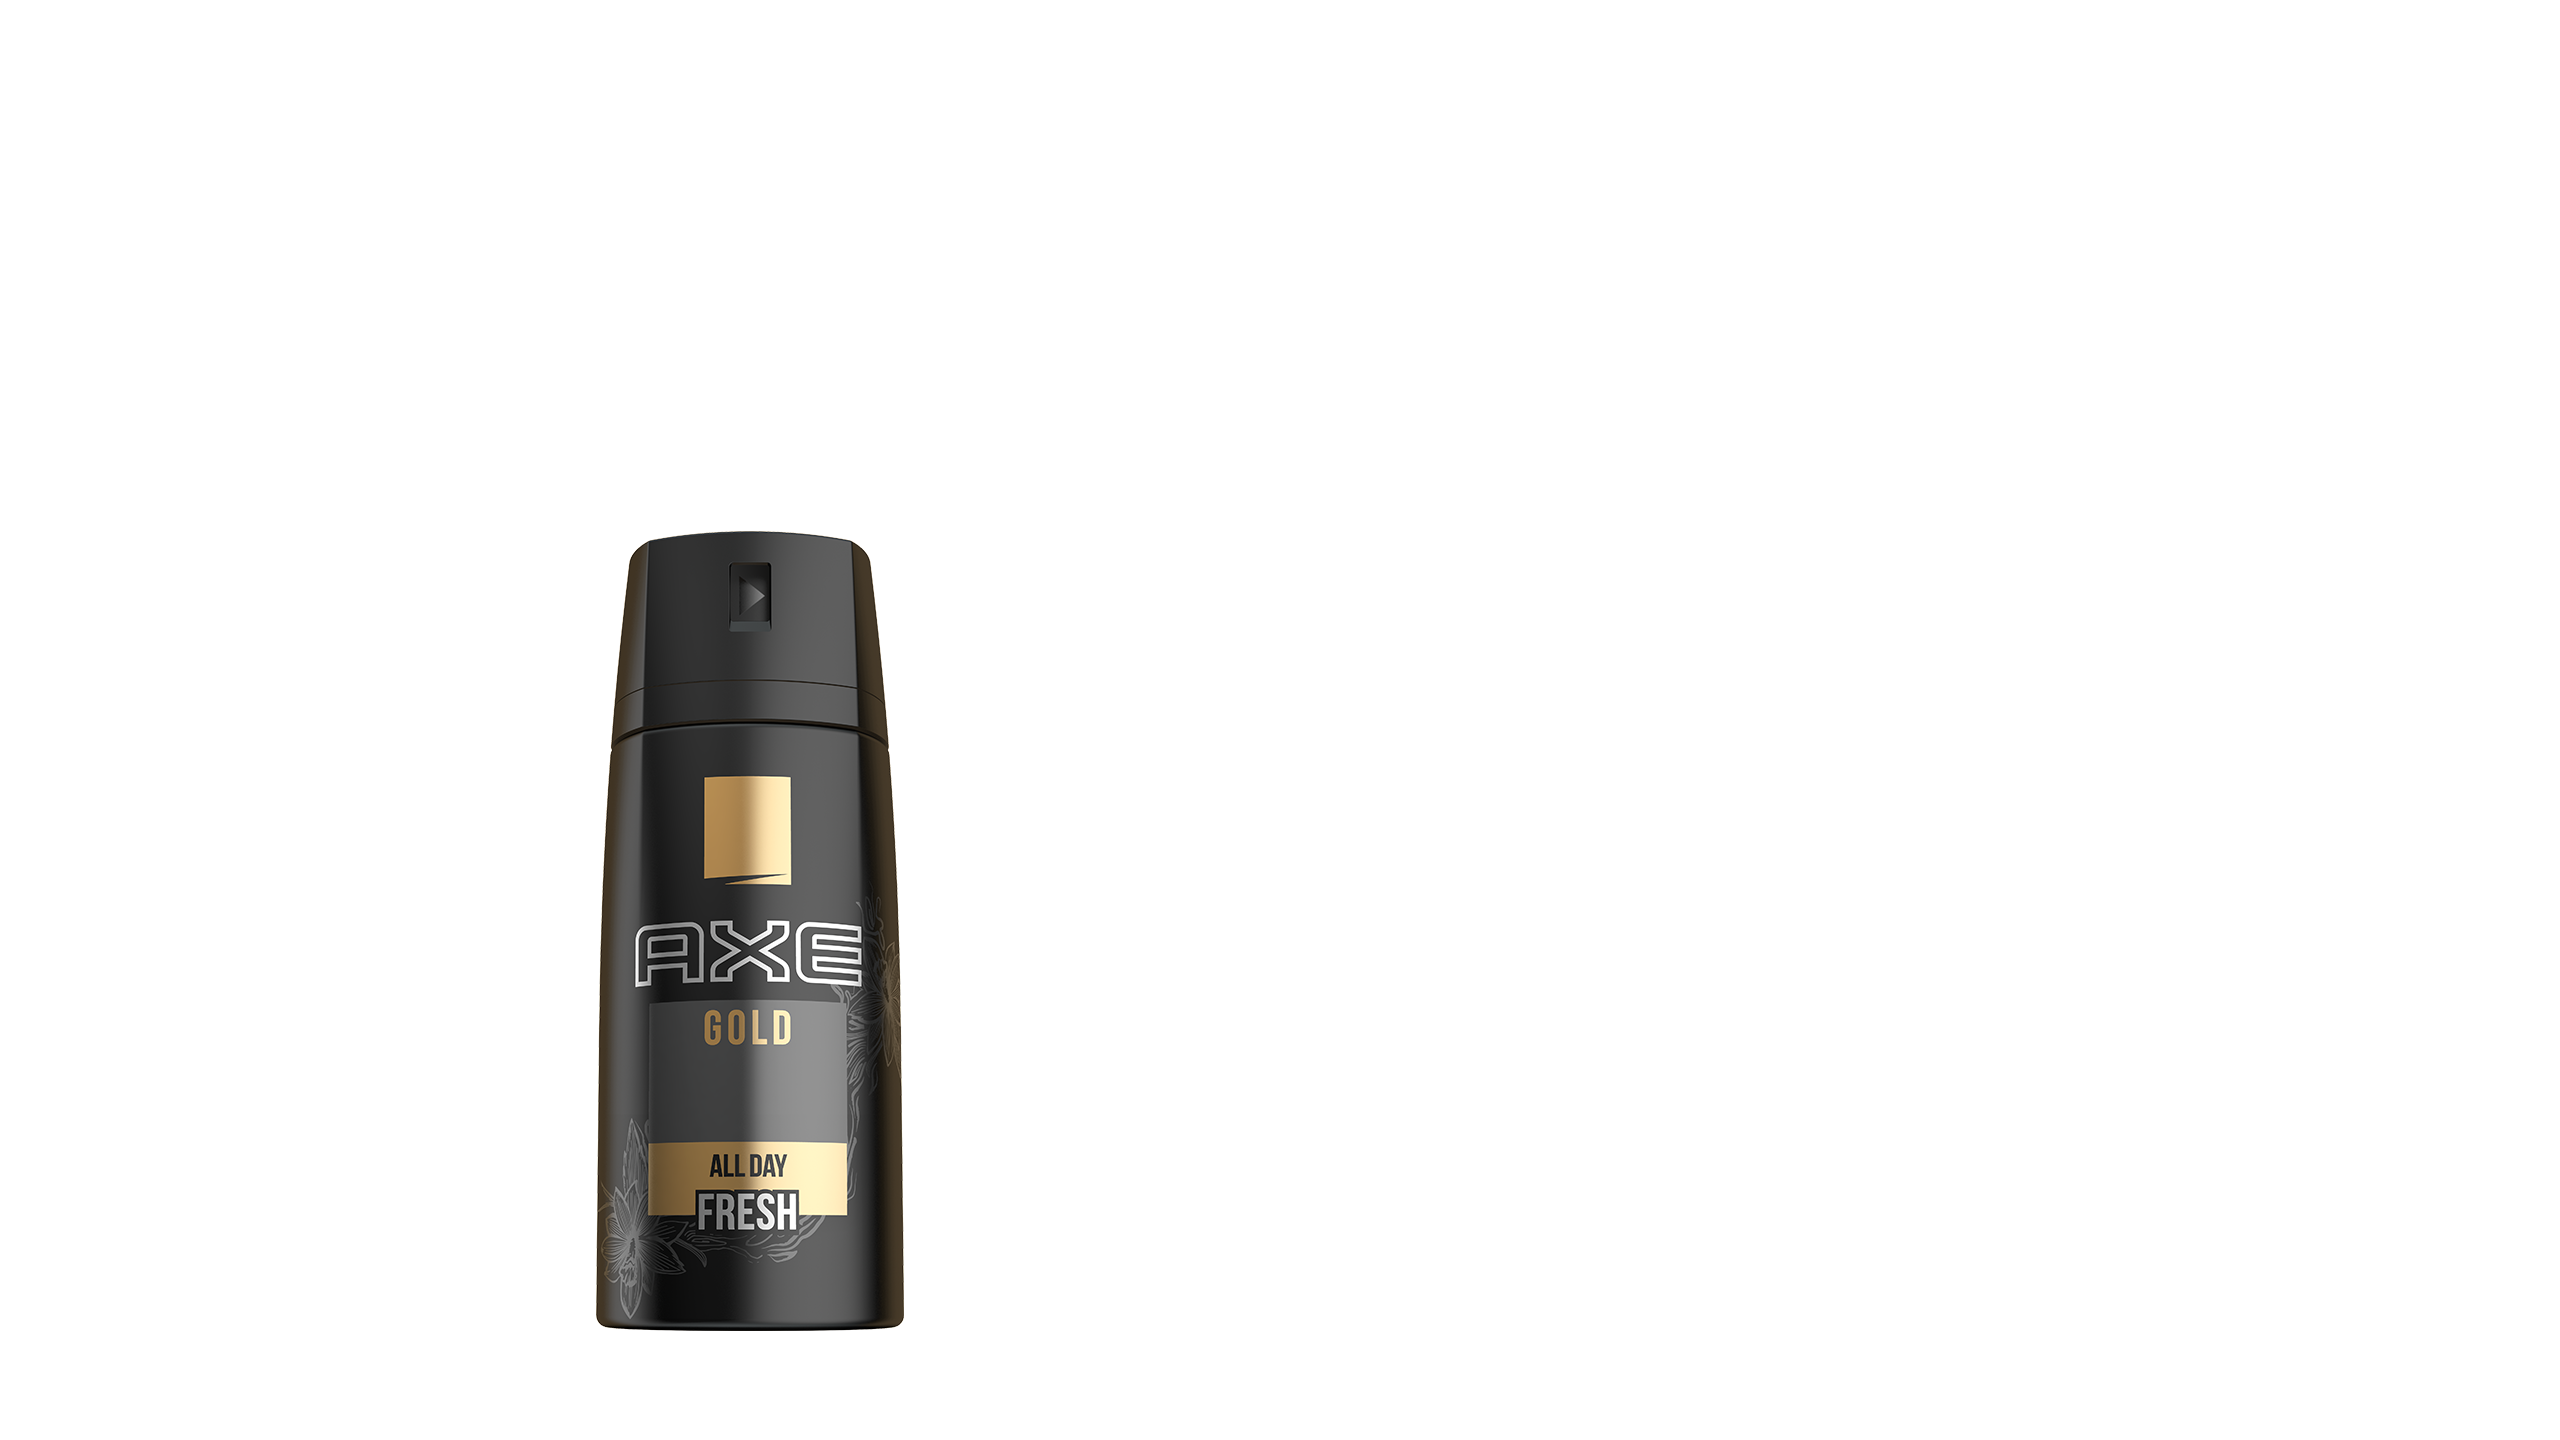 Https Fr Story White Label Is Changing Axe Deodorant Bodyspray Gold Temptation 150ml Twin Pack 8710447249017 Copy 2650x1440 1